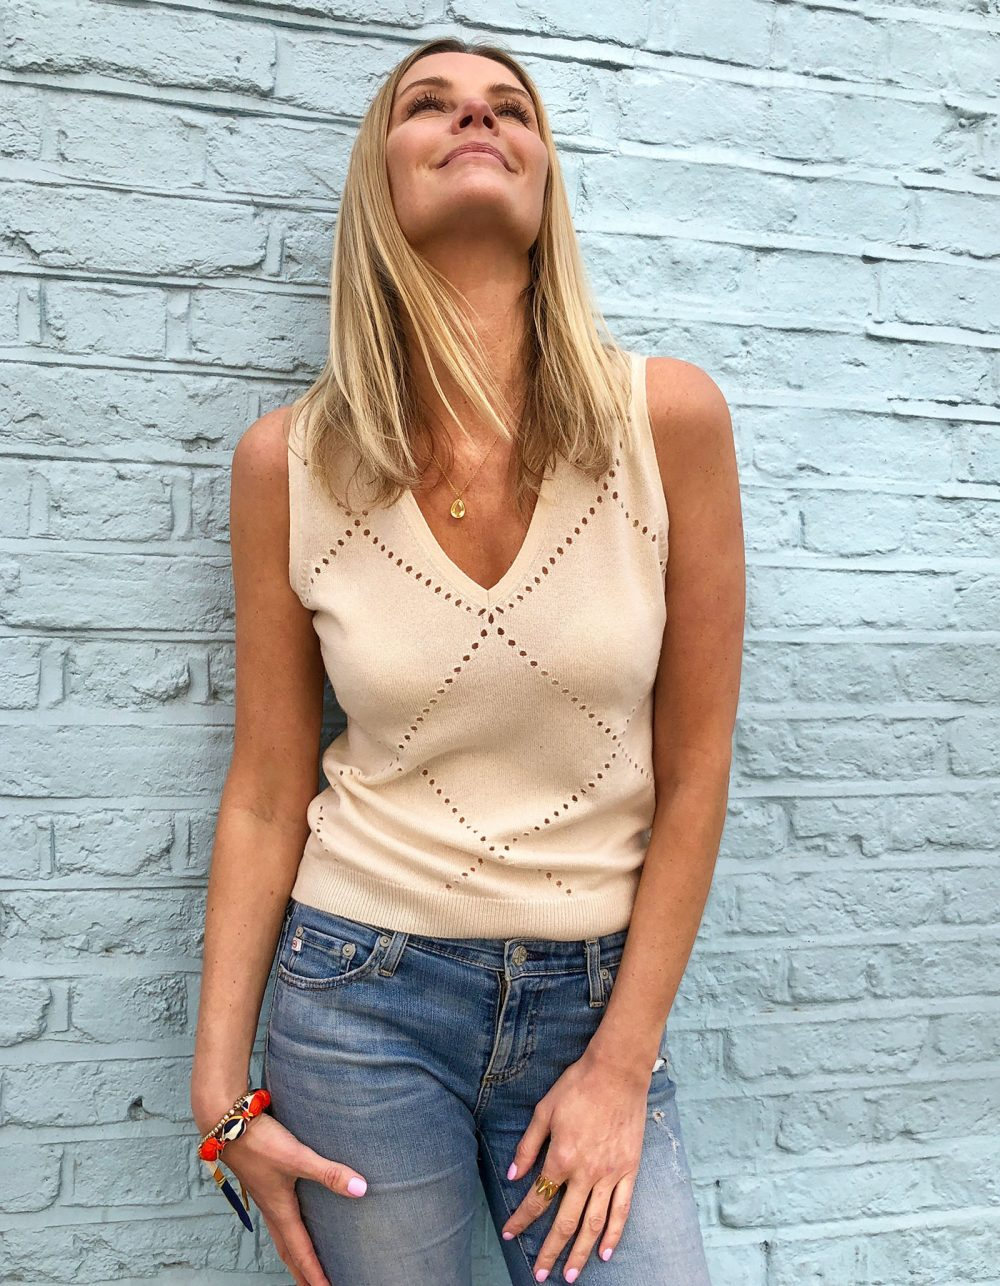 A model leaning against a brick wall wearing womens cashmere, a malin darlin Katie vest cashmere jumper.